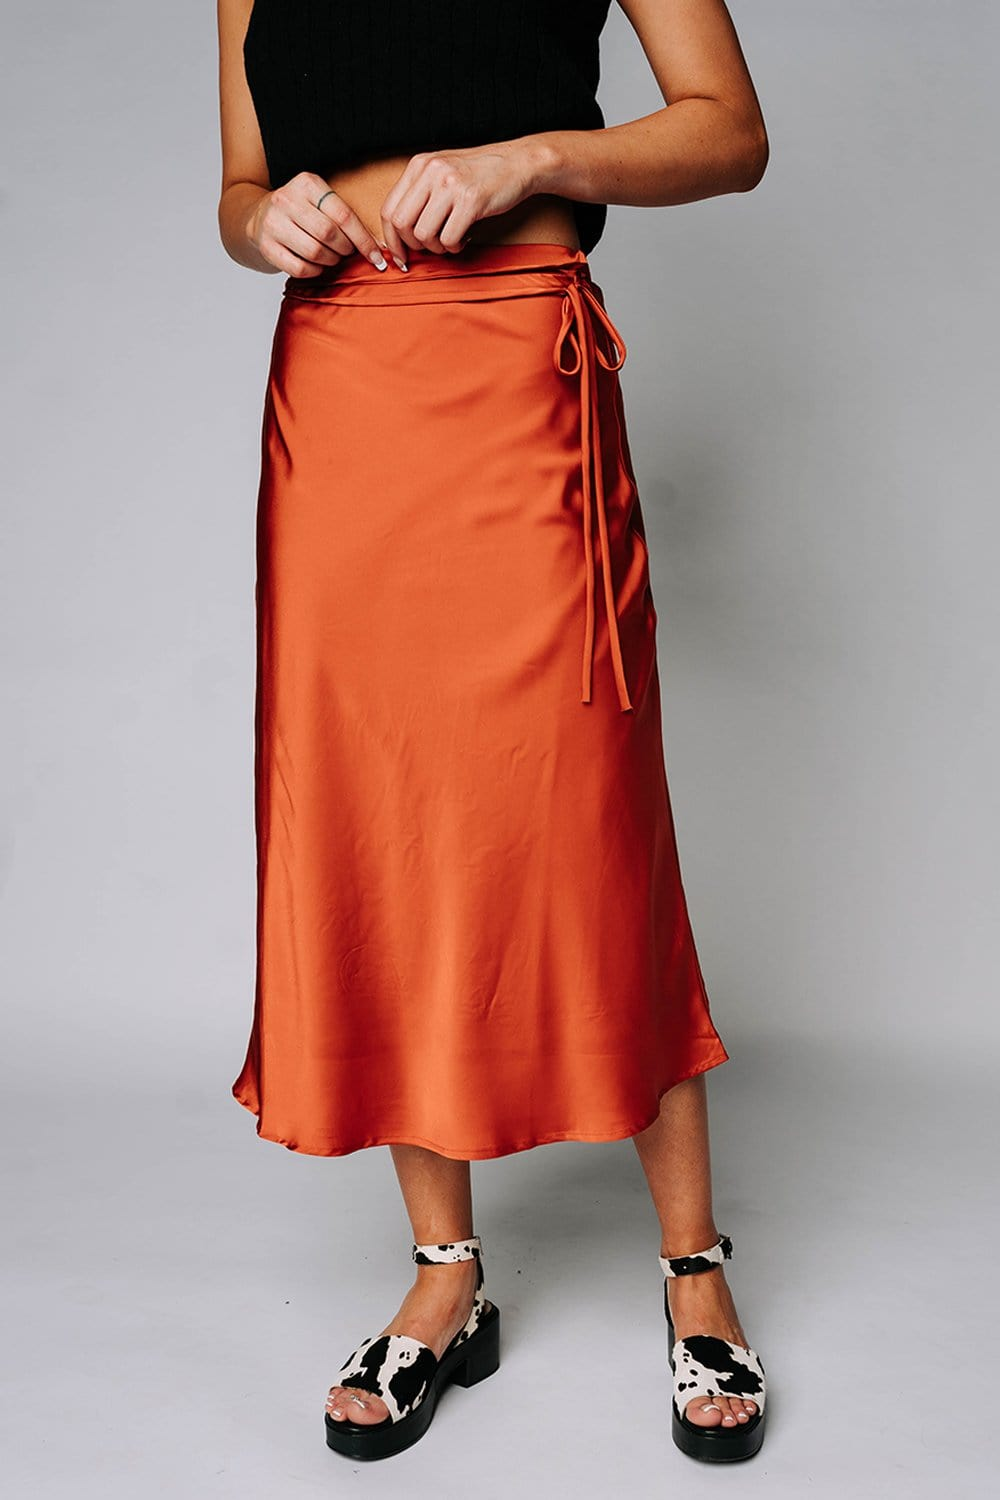 Renesmee Satin Midi Skirt in Terra Cotta